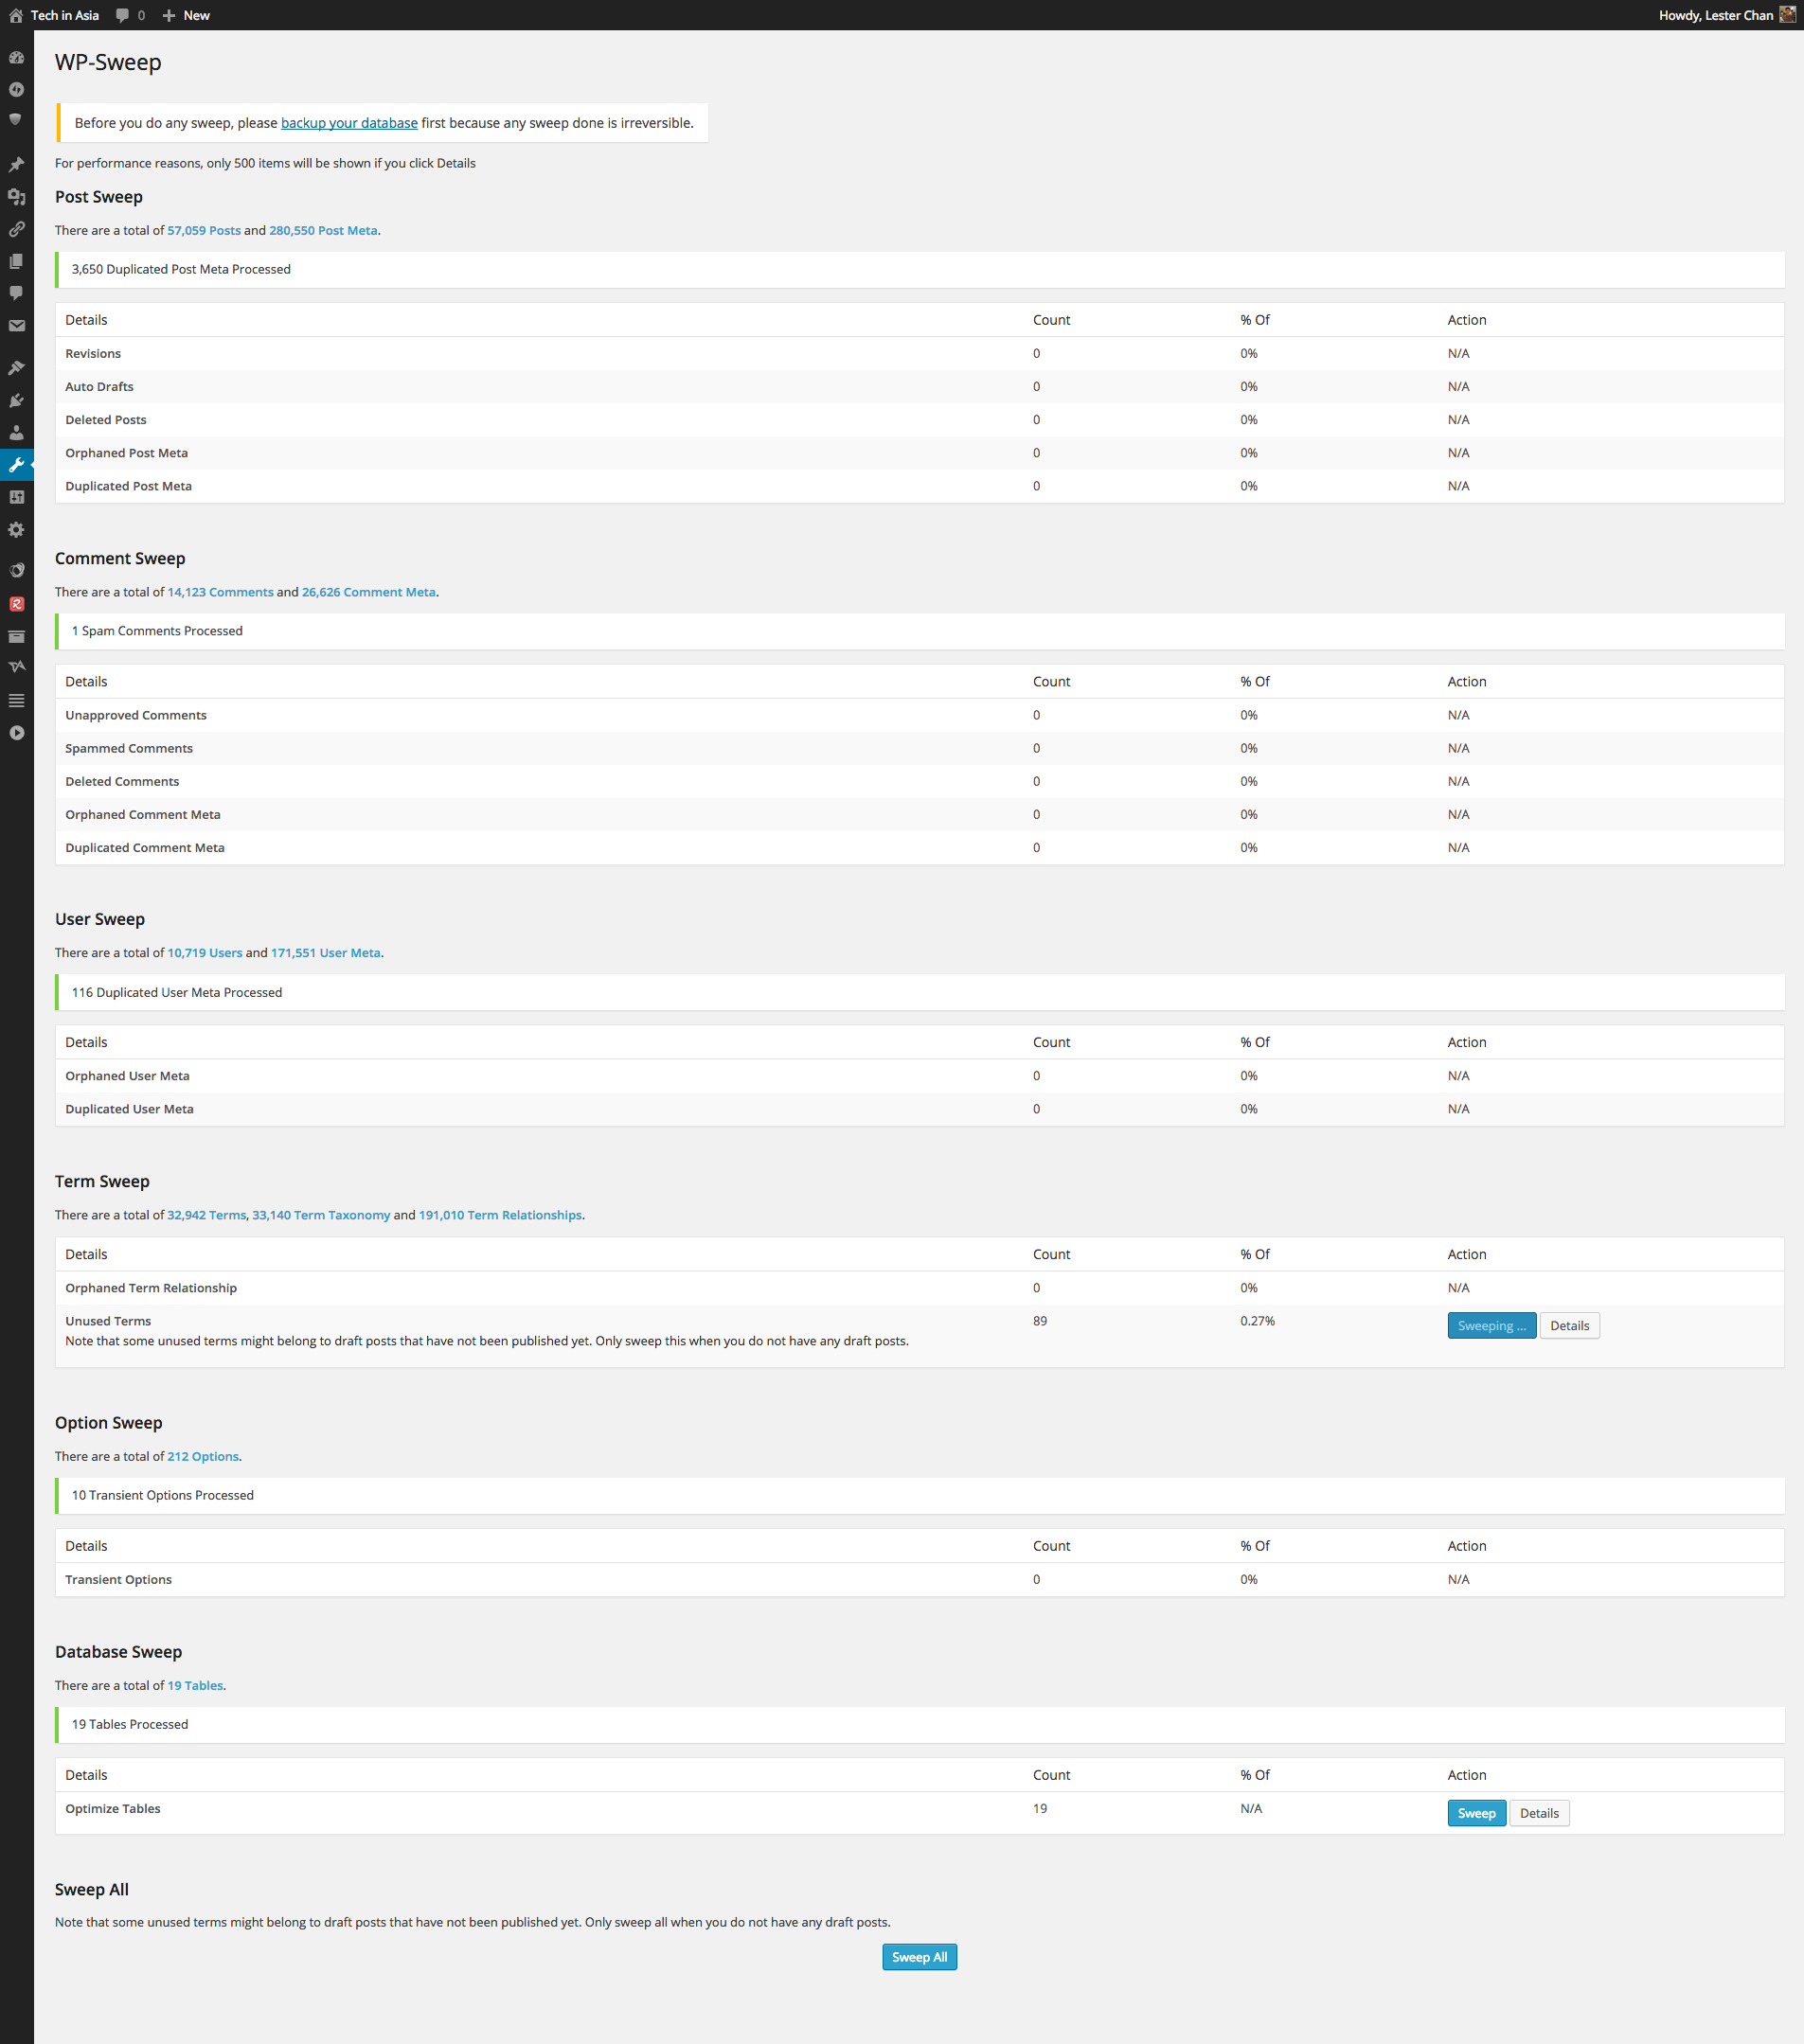 WP-Sweep's Screenshot: WP-Sweep Administrator Page (Swept)